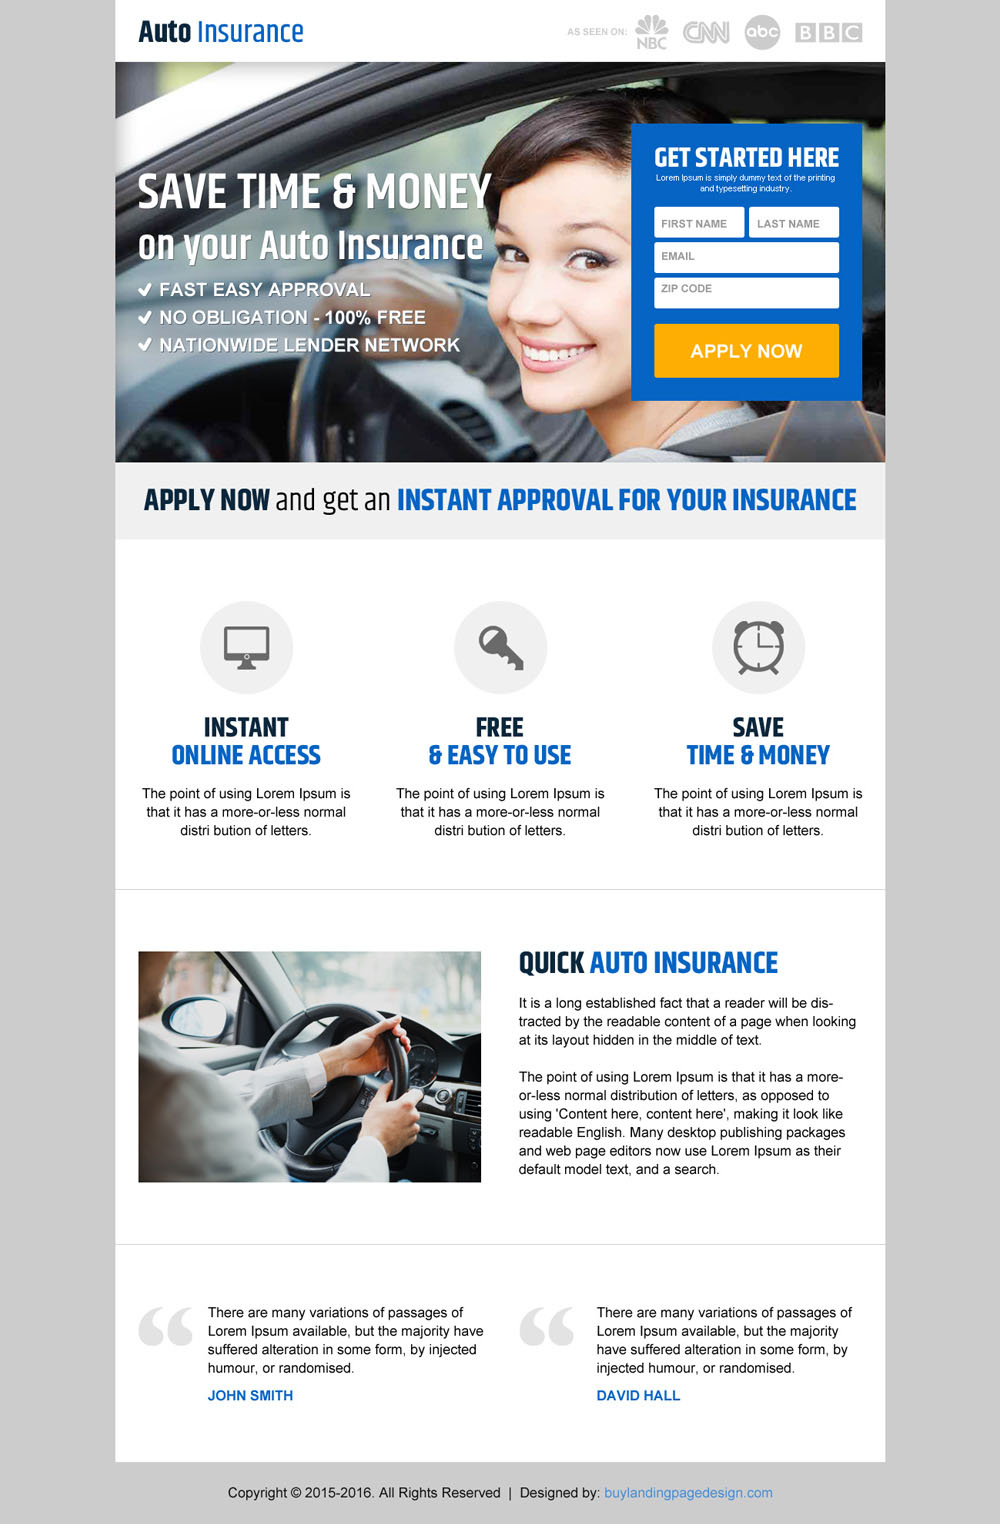 save-money-time-on-auto-insurance-service-converting-landing-page-design-042